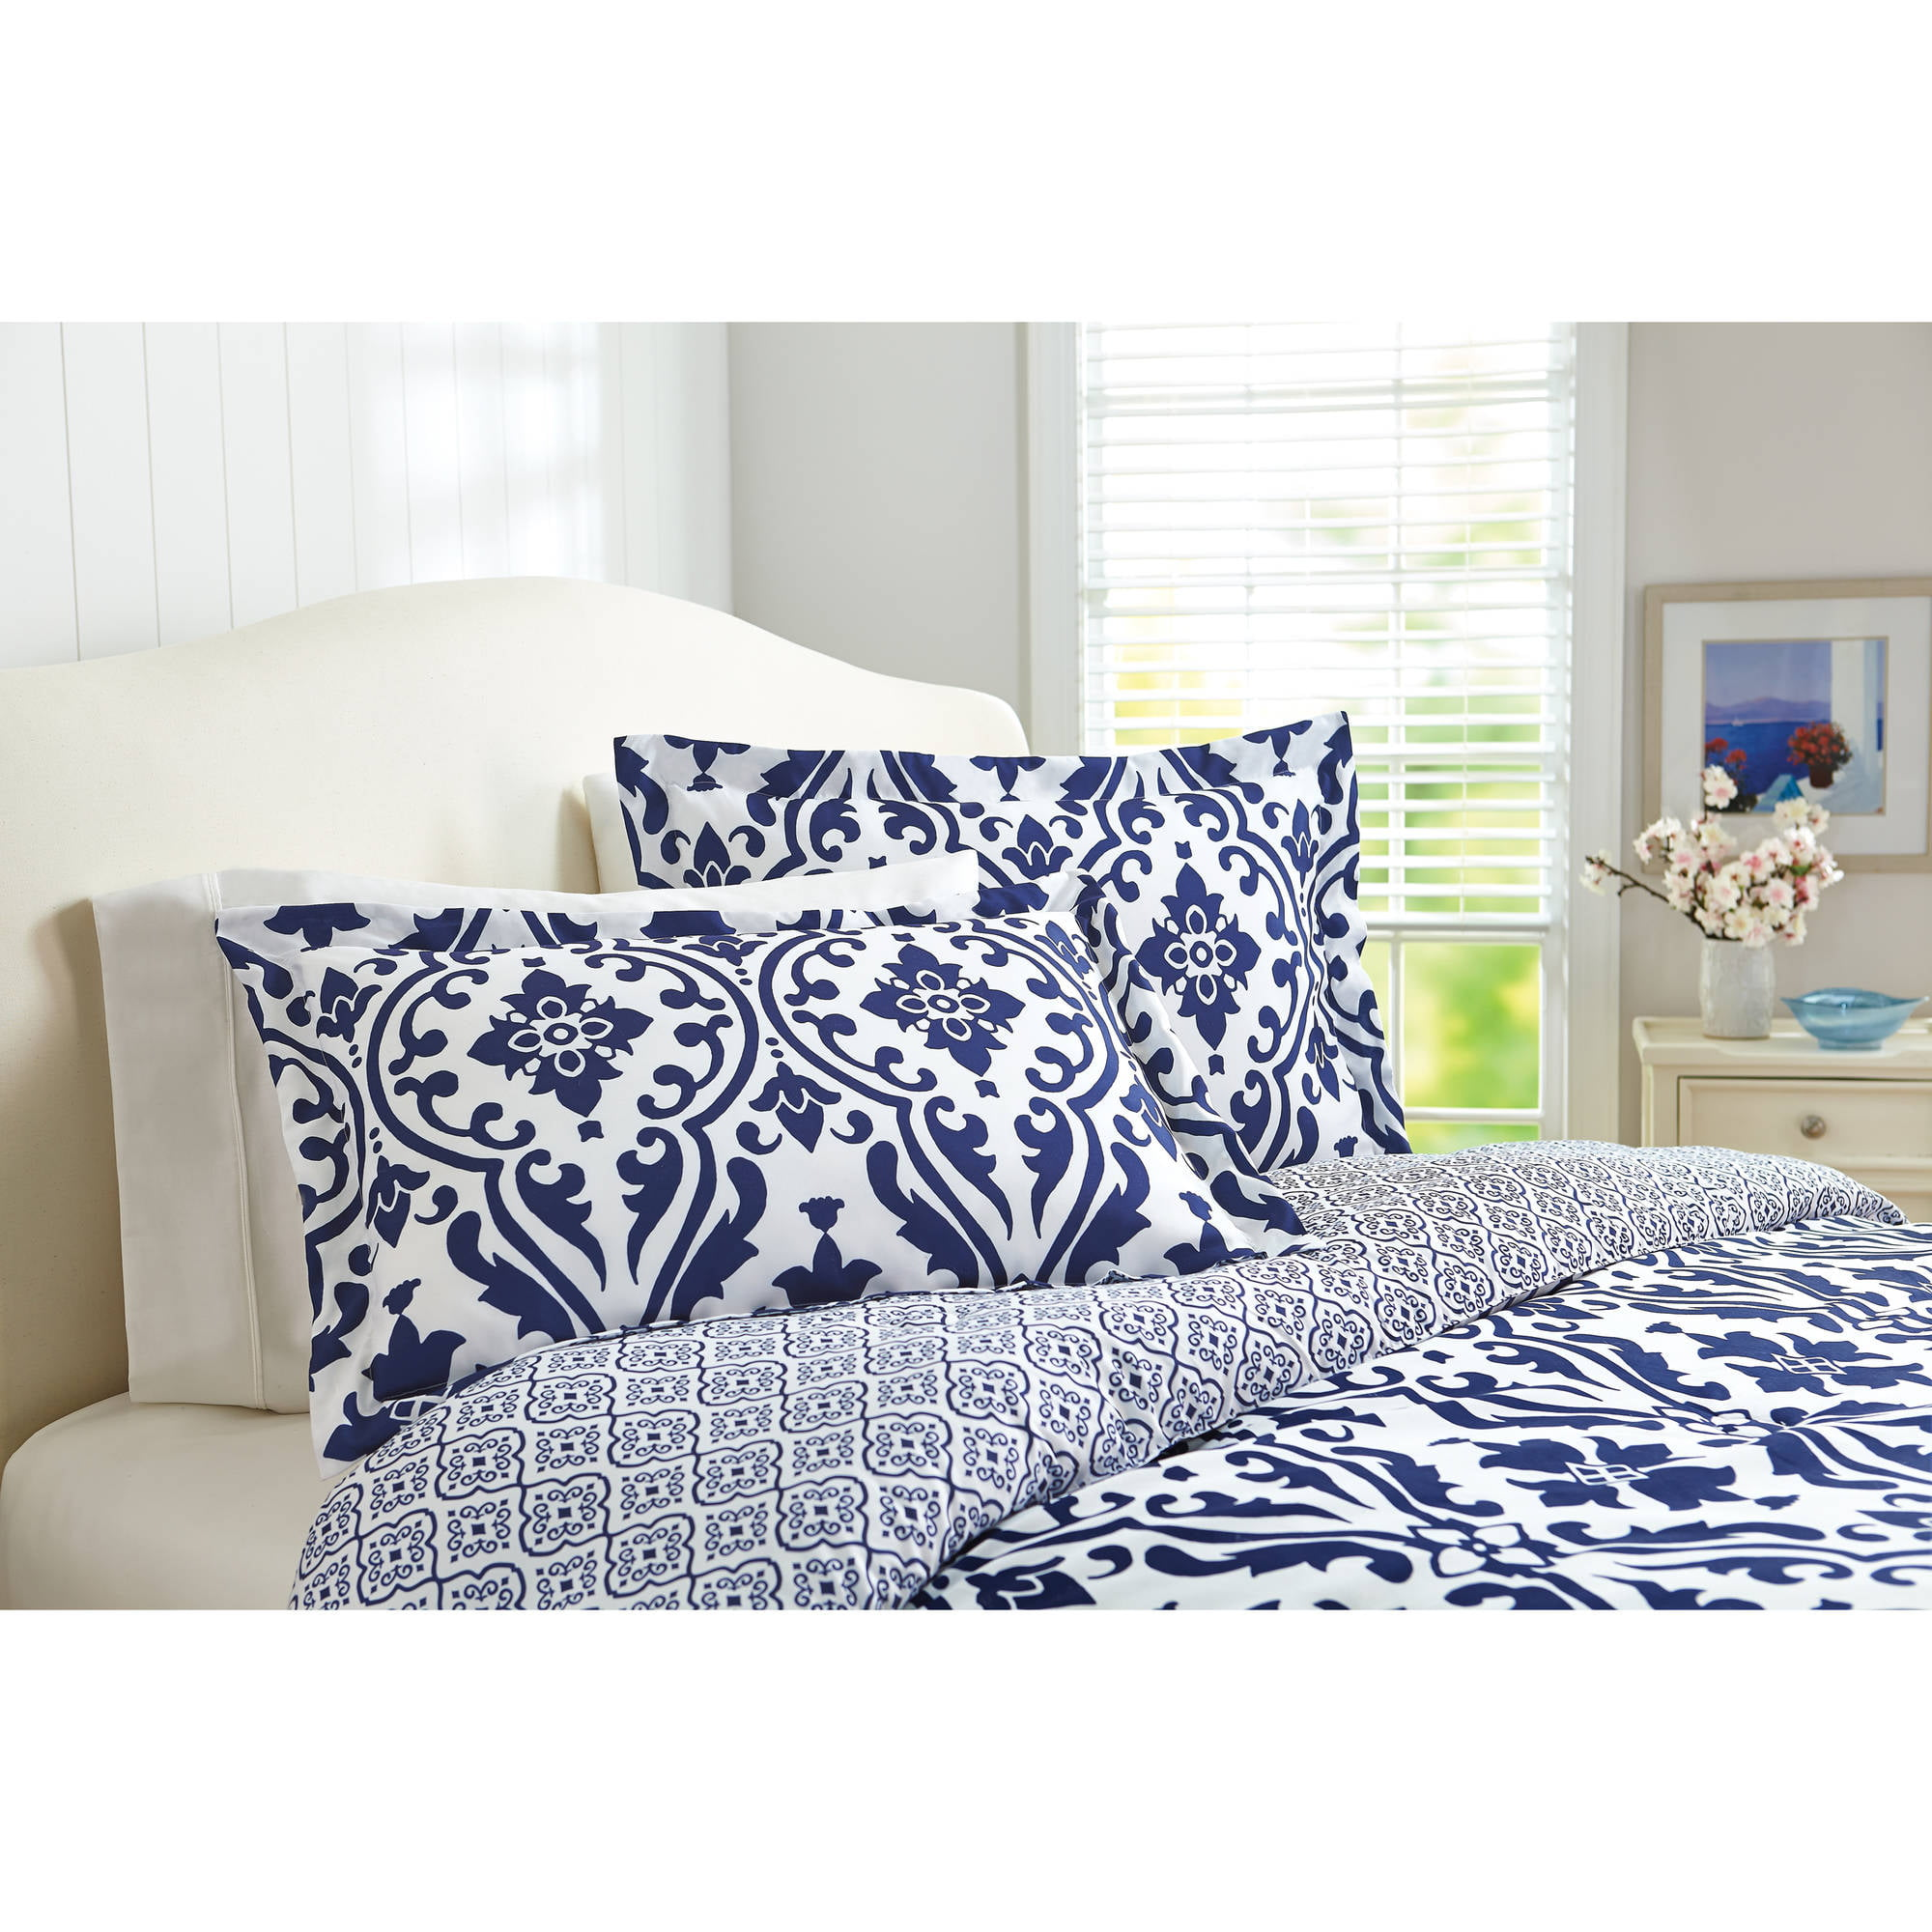 Better Homes And Gardens Indigo Scrollwork 5 Piece Bedding